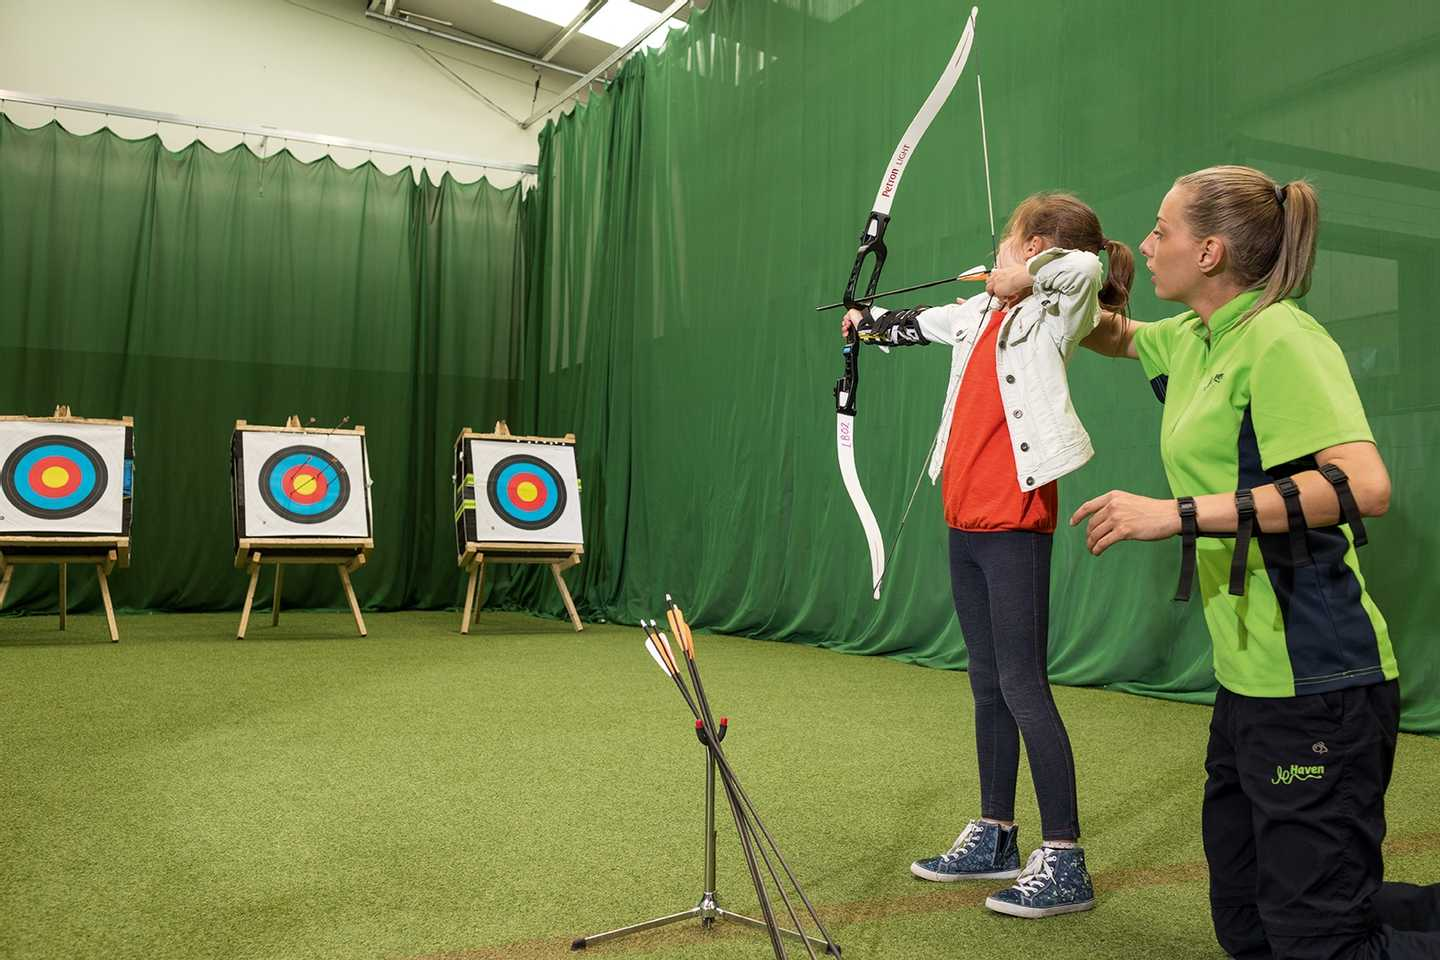 Child playing archery in the indoor activity barn